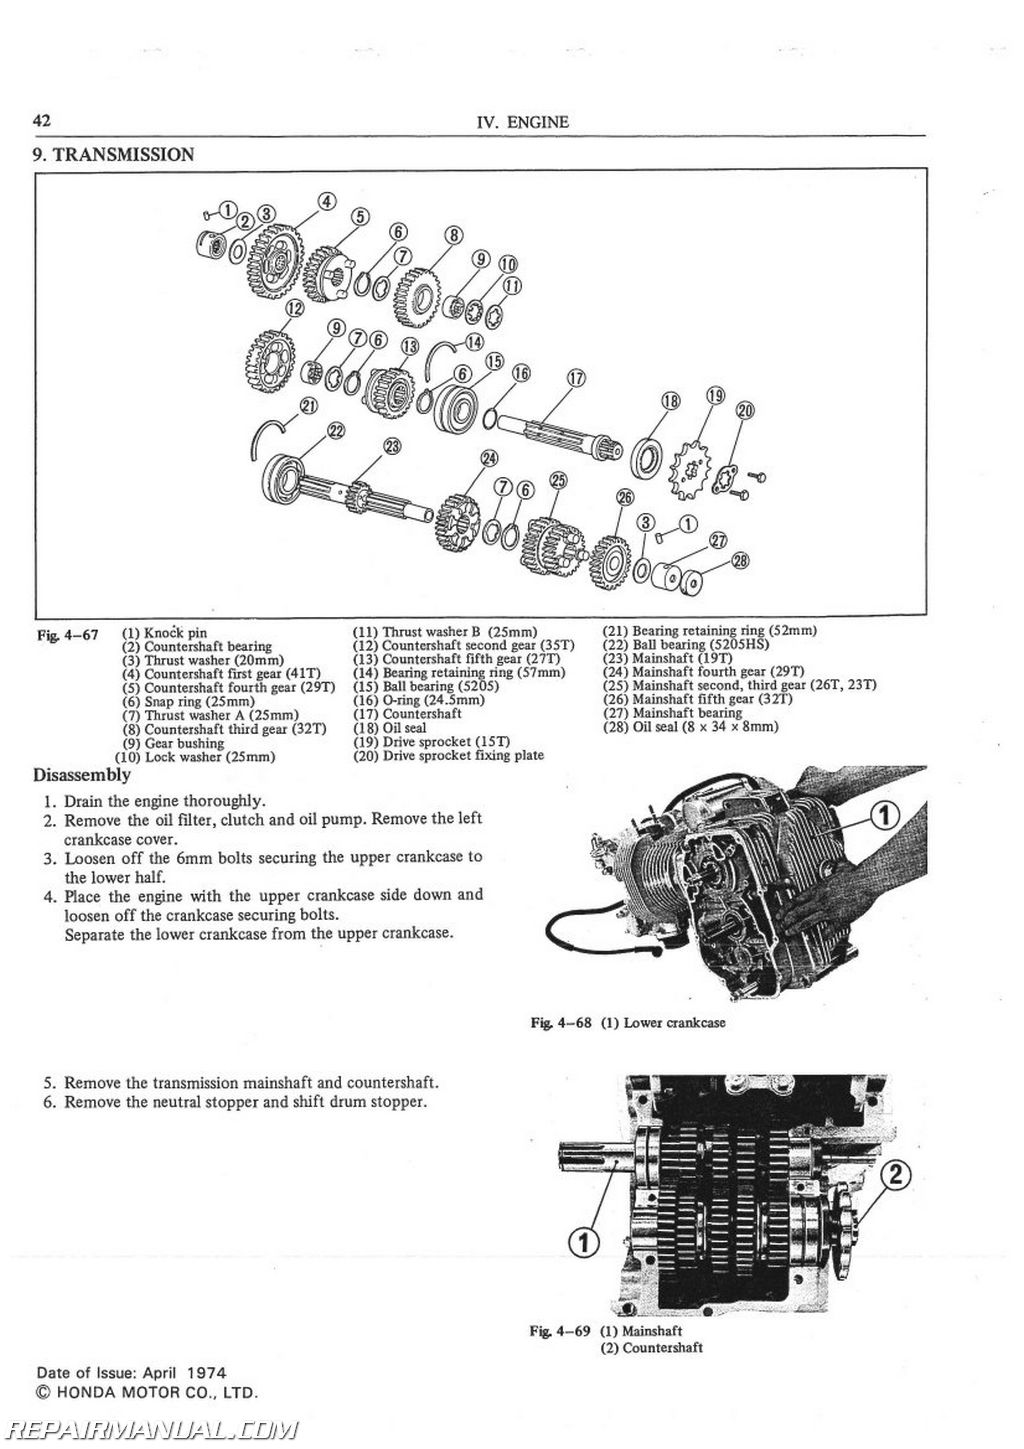 1975-1976 Honda CB500T Motorcycle Service Manual : 6137501